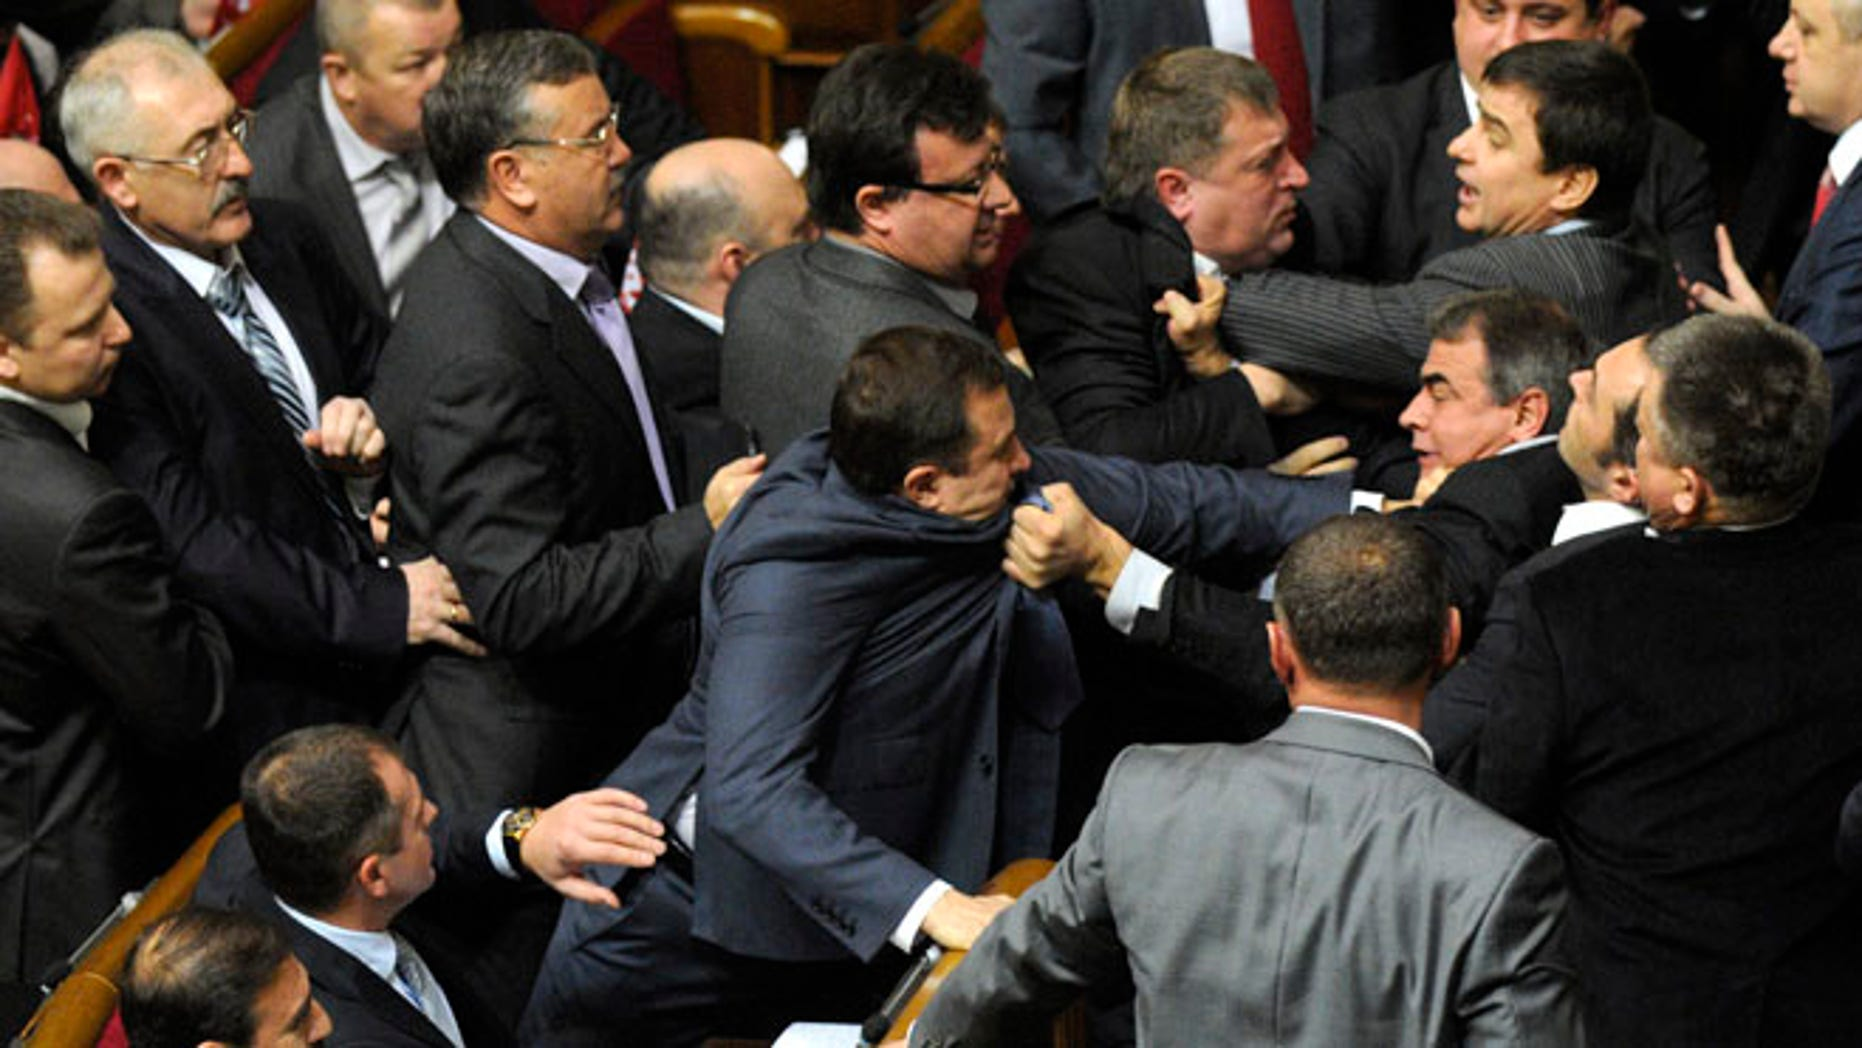 Dec. 13, 2012: Ukrainian lawmakers fight around the rostrum during the first session of Ukraine's newly elected parliament in Kiev, Ukraine.